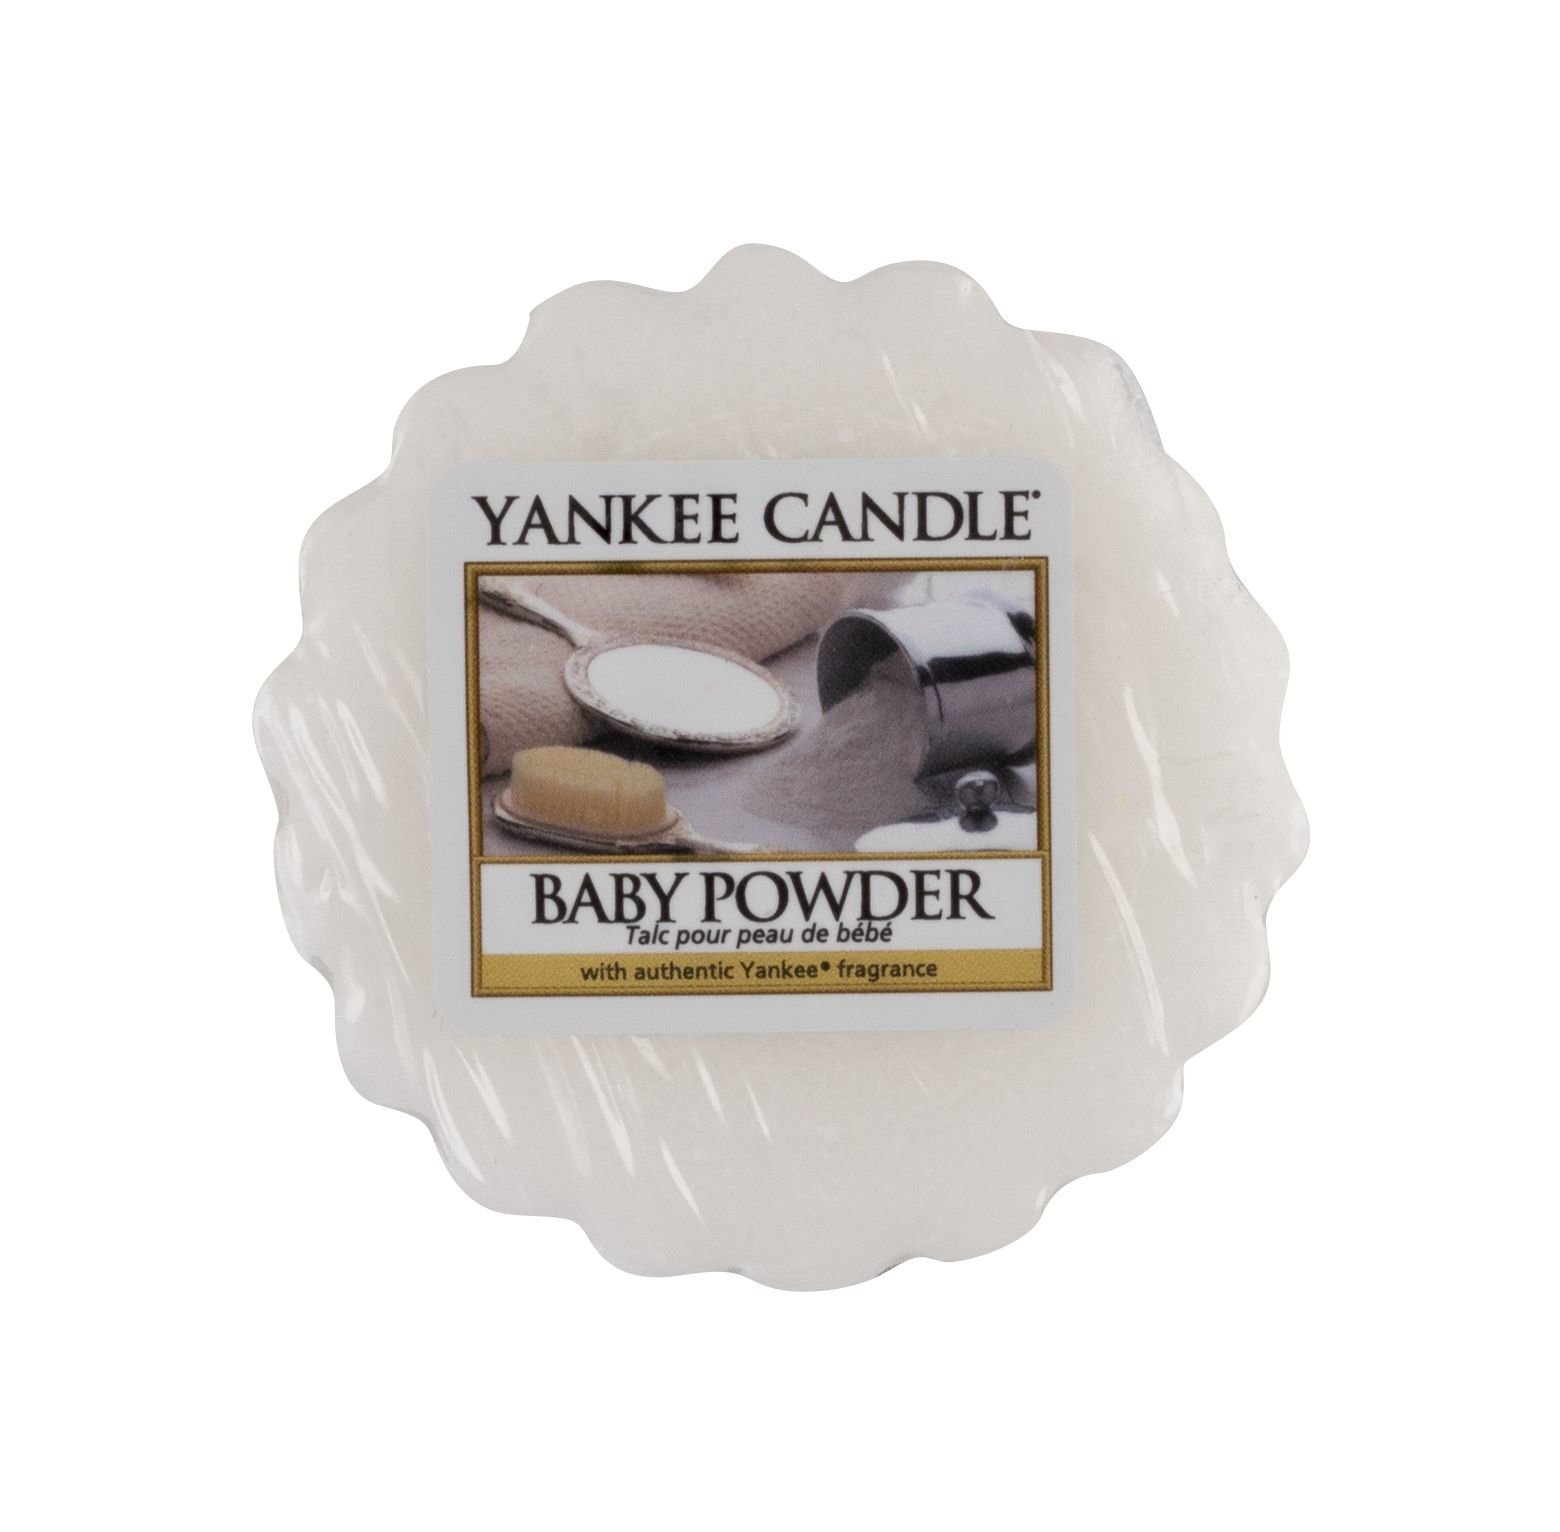 Yankee Candle Baby Powder Scented Candle 22ml